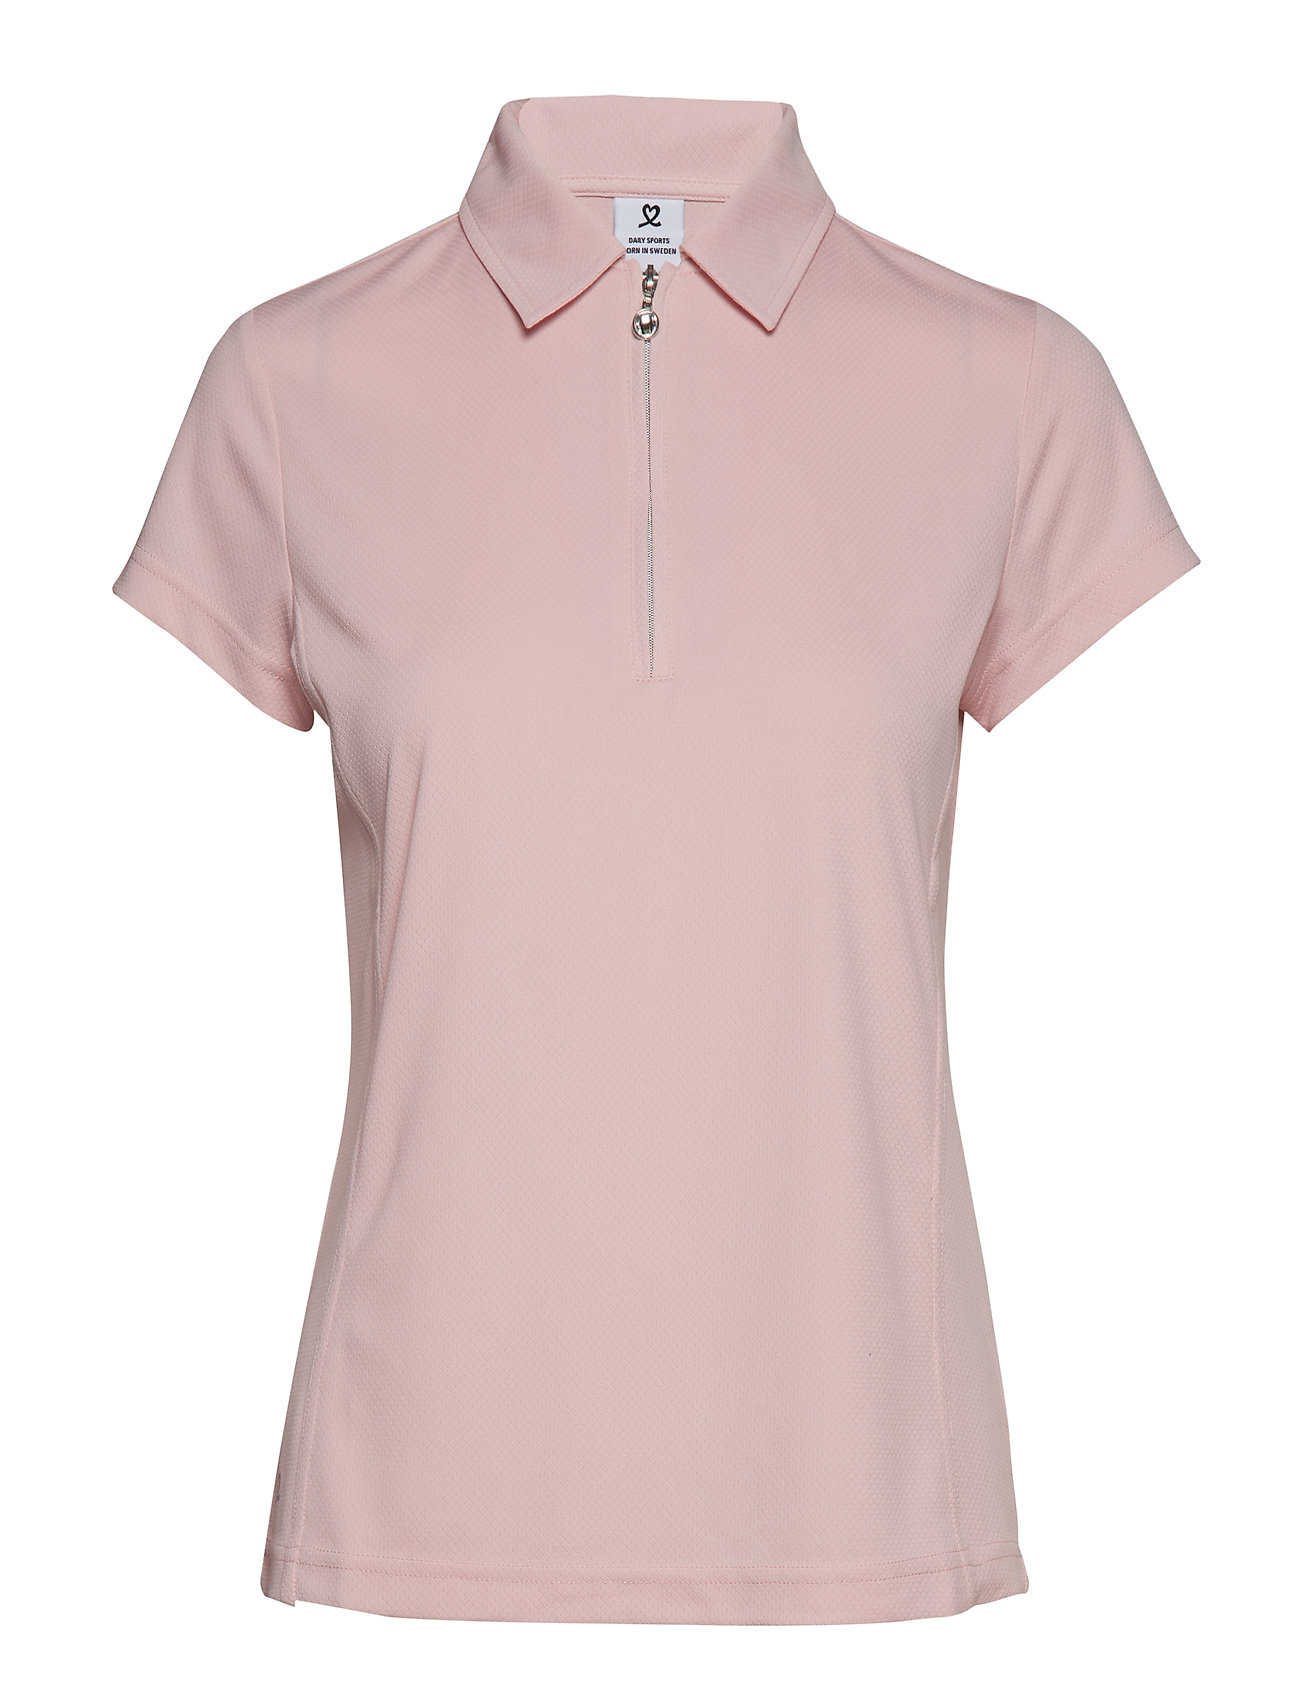 Daily Sports MACY CAP/S POLO SHIRT